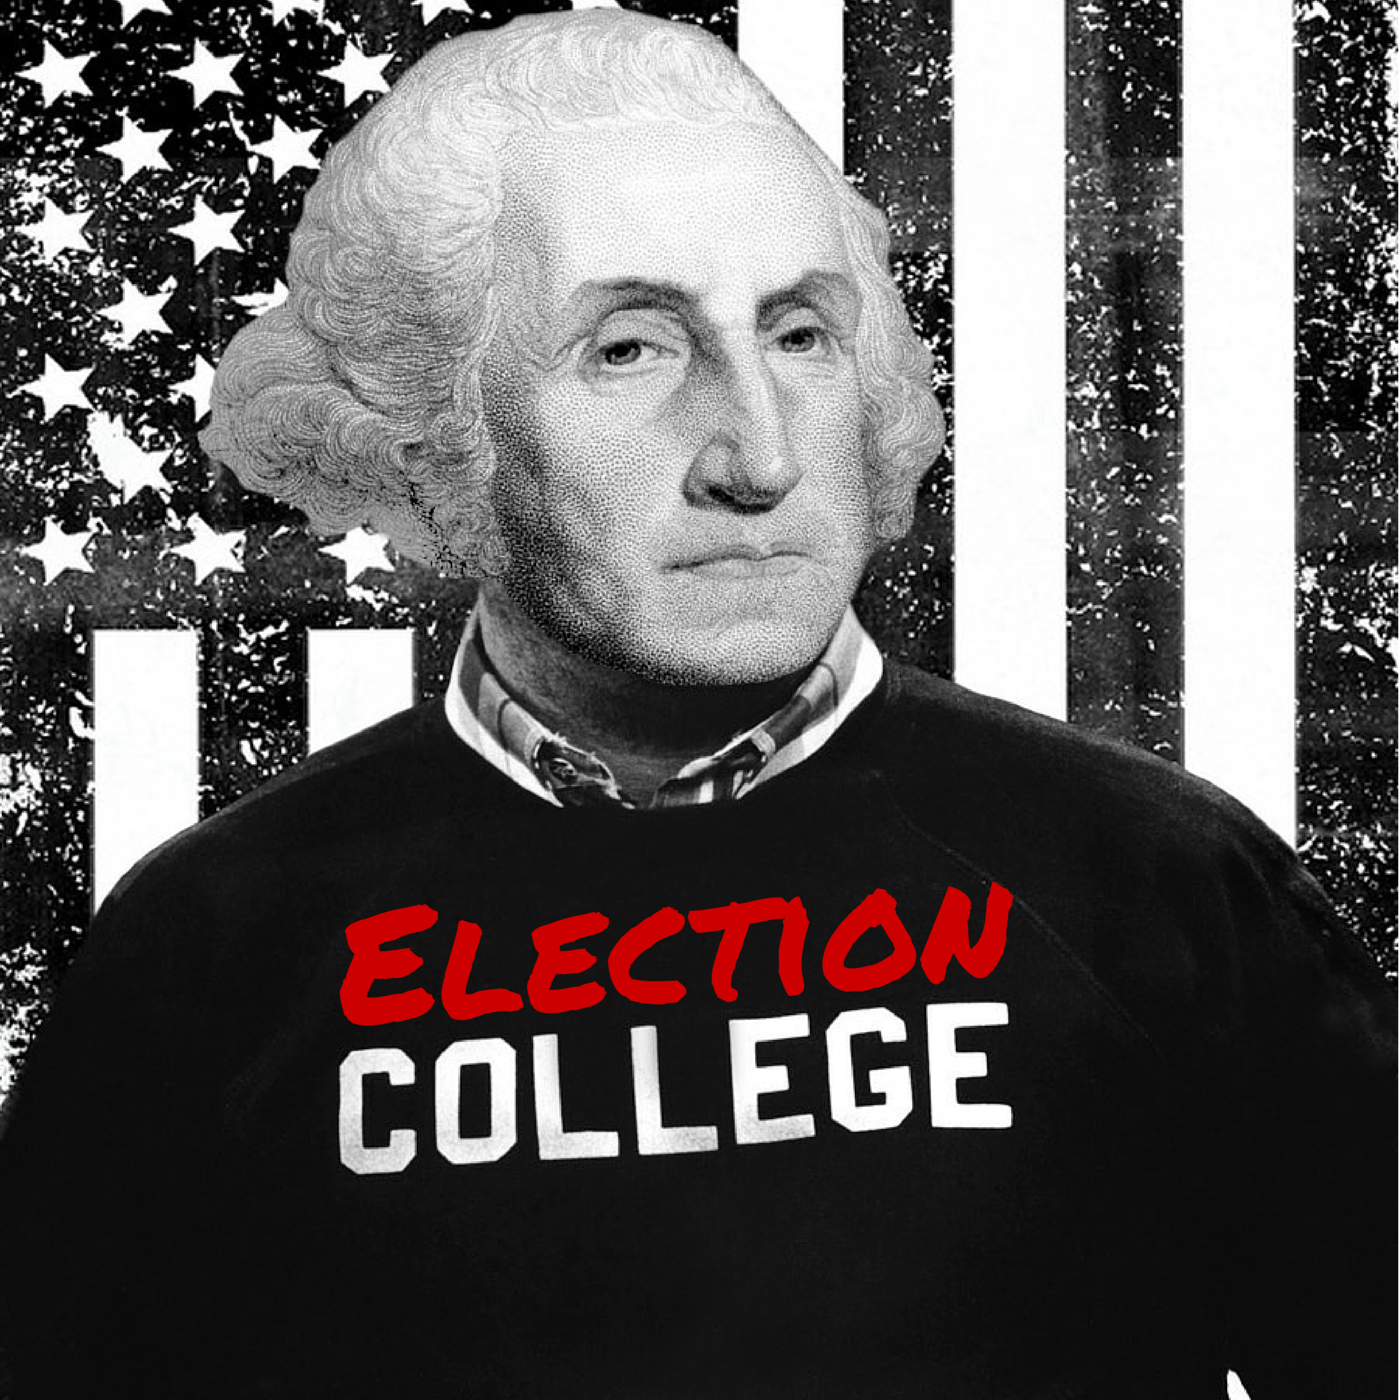 Inauguration of Andrew Jackson - 1829 | Episode #158 | Election College: United States Presidential Election History